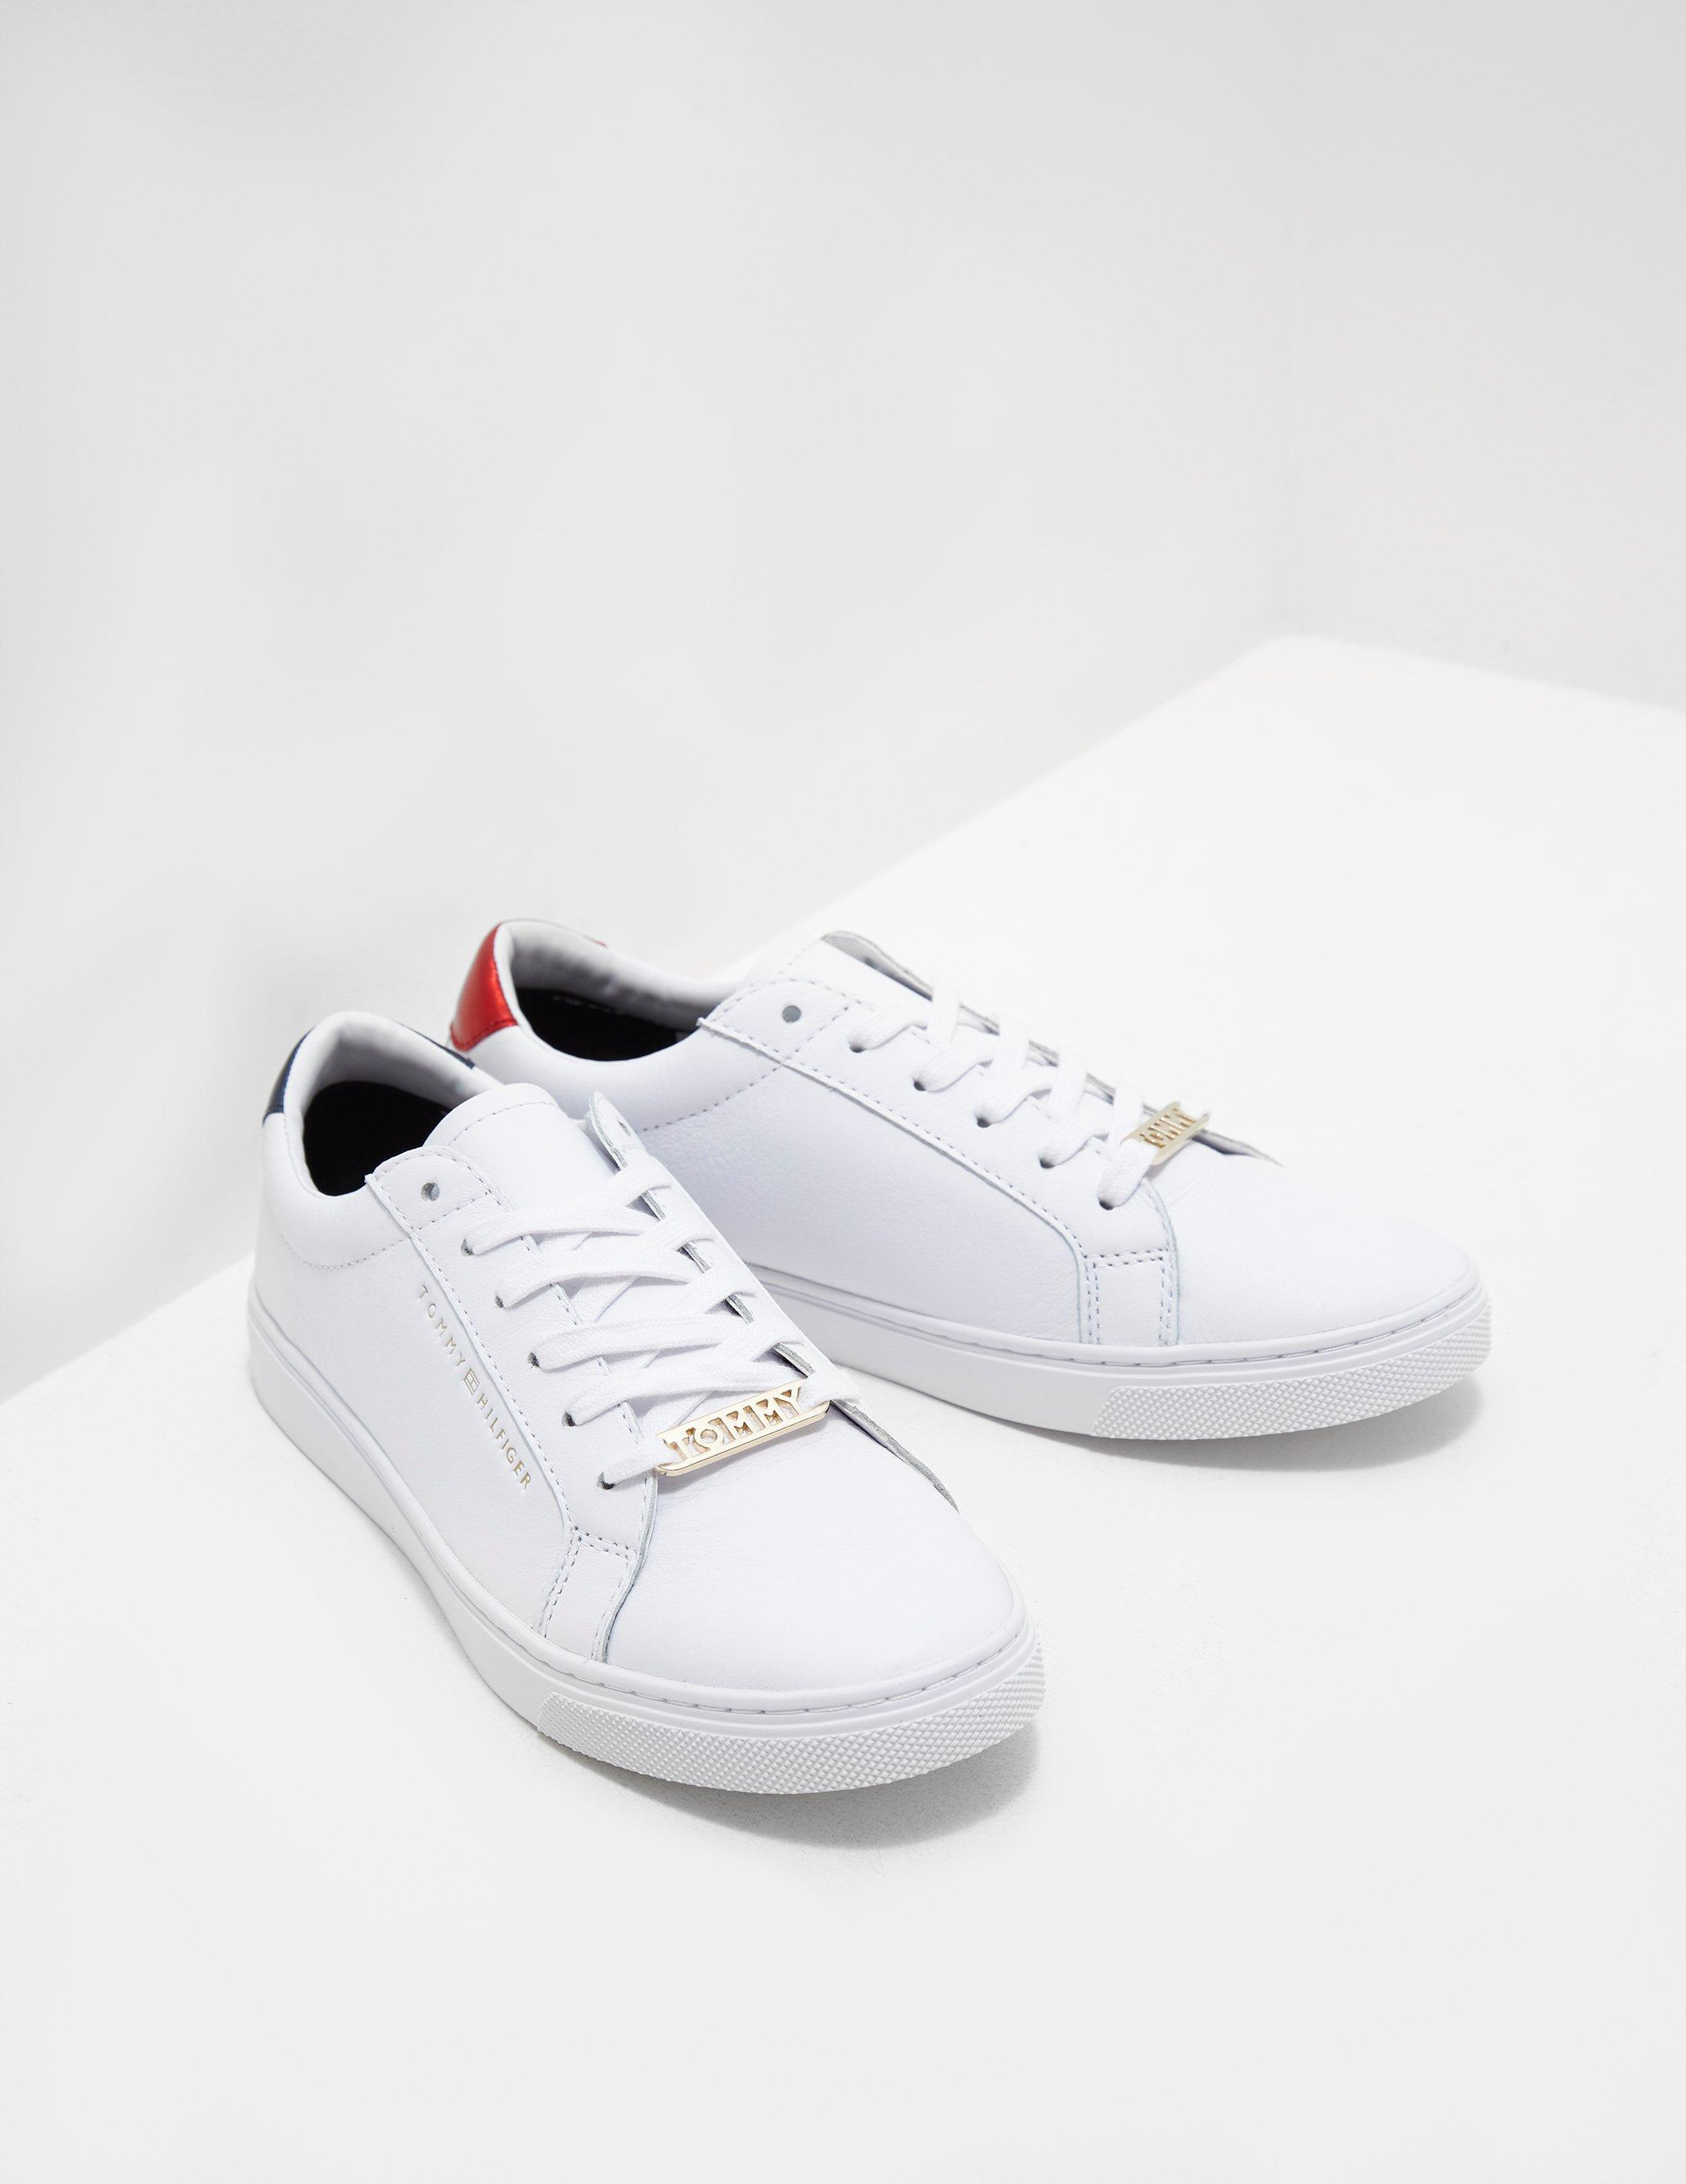 3fba8a94b3e15 Lyst - Tommy Hilfiger Essential Sneakers White in White